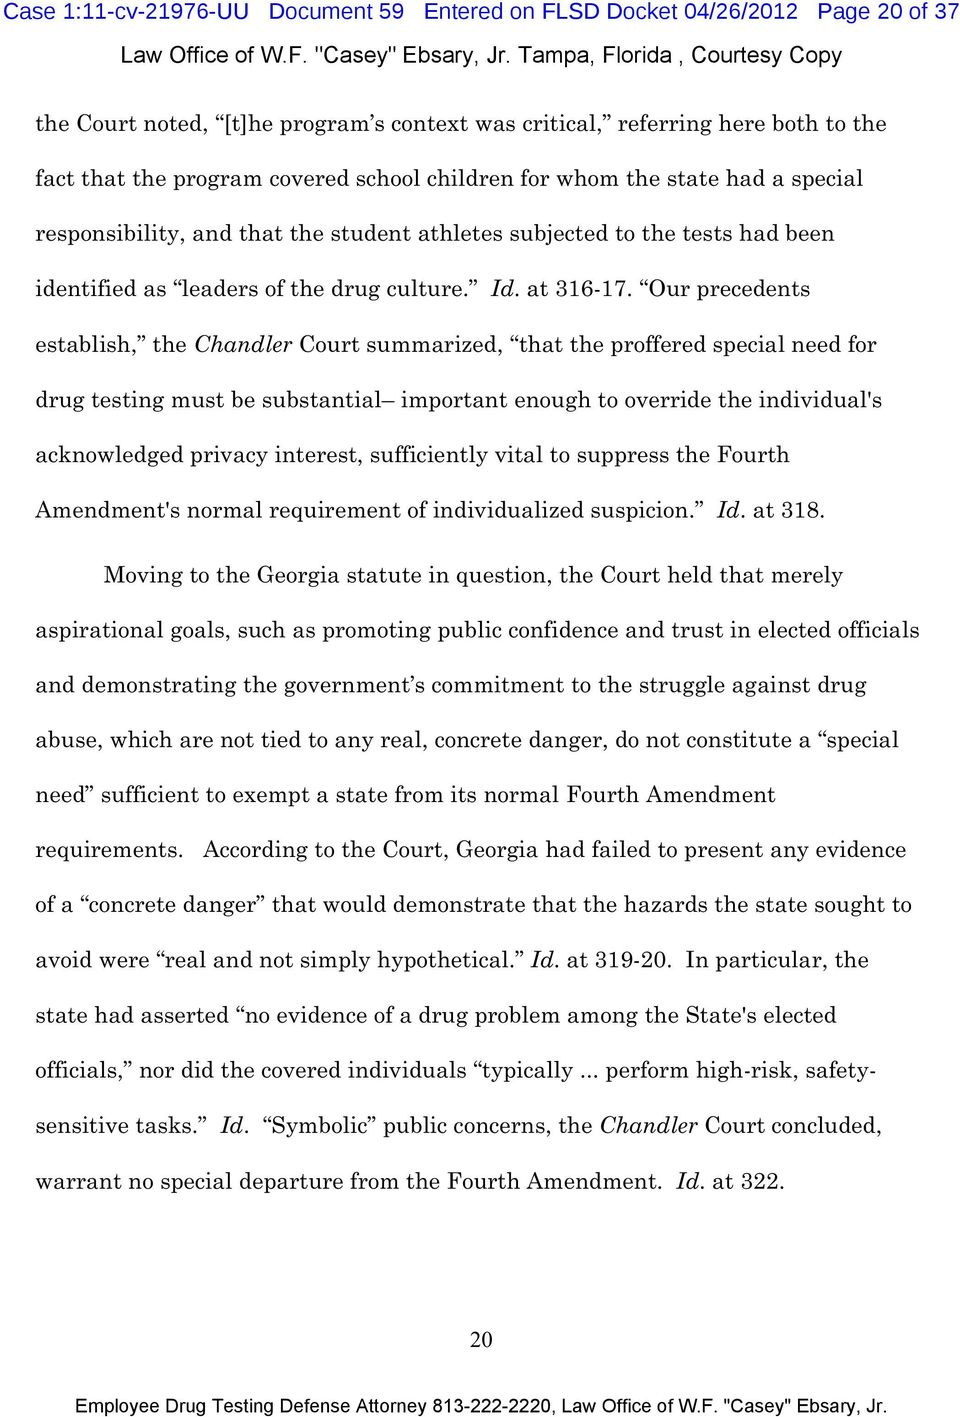 Our precedents establish, the Chandler Court summarized, that the proffered special need for drug testing must be substantial important enough to override the individual's acknowledged privacy